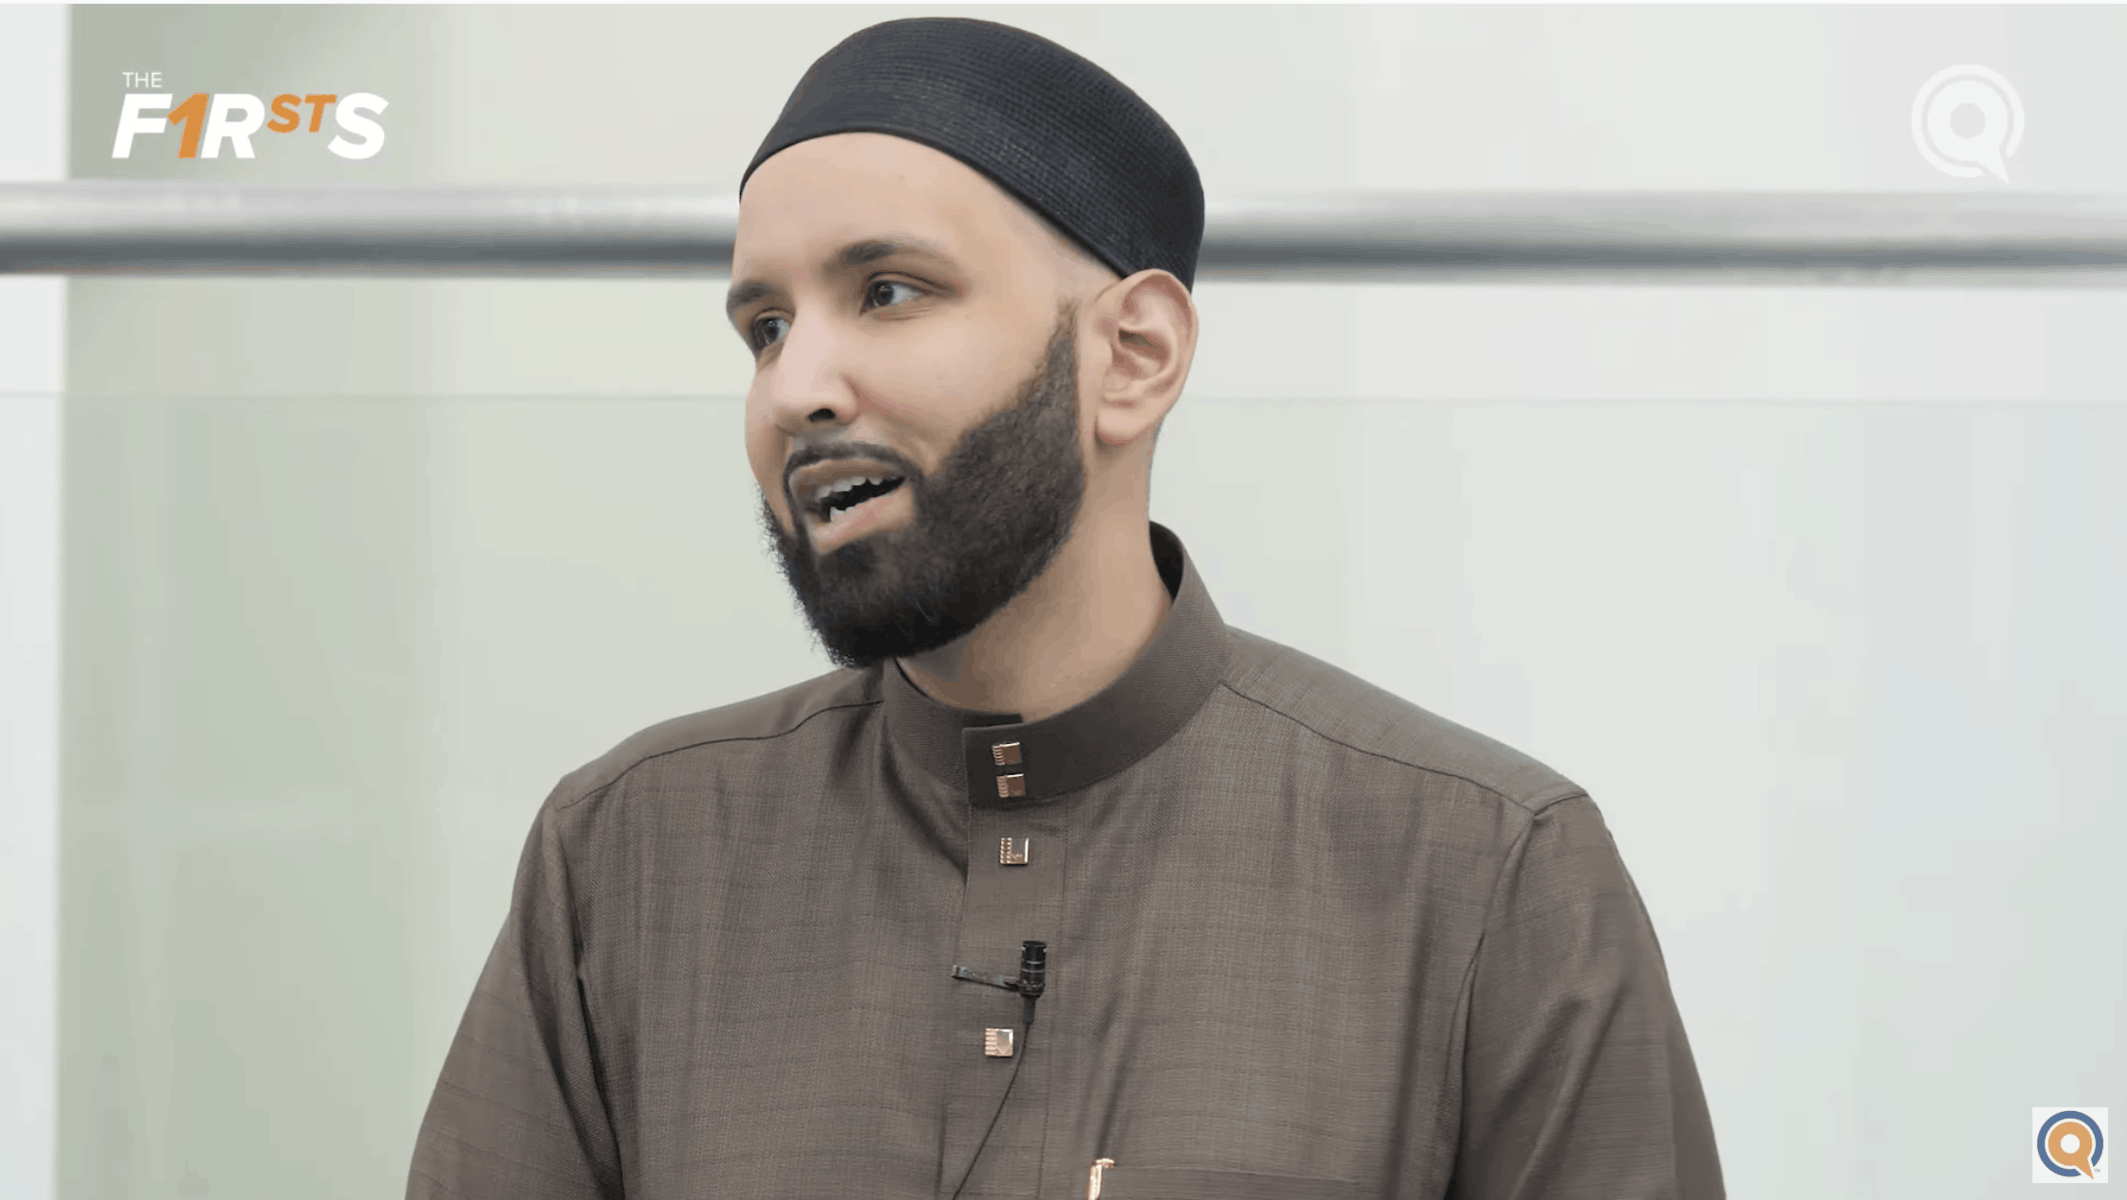 Omar Suleiman – The Firsts (Episode 10): Abu Bakr: Setting His Own Standards